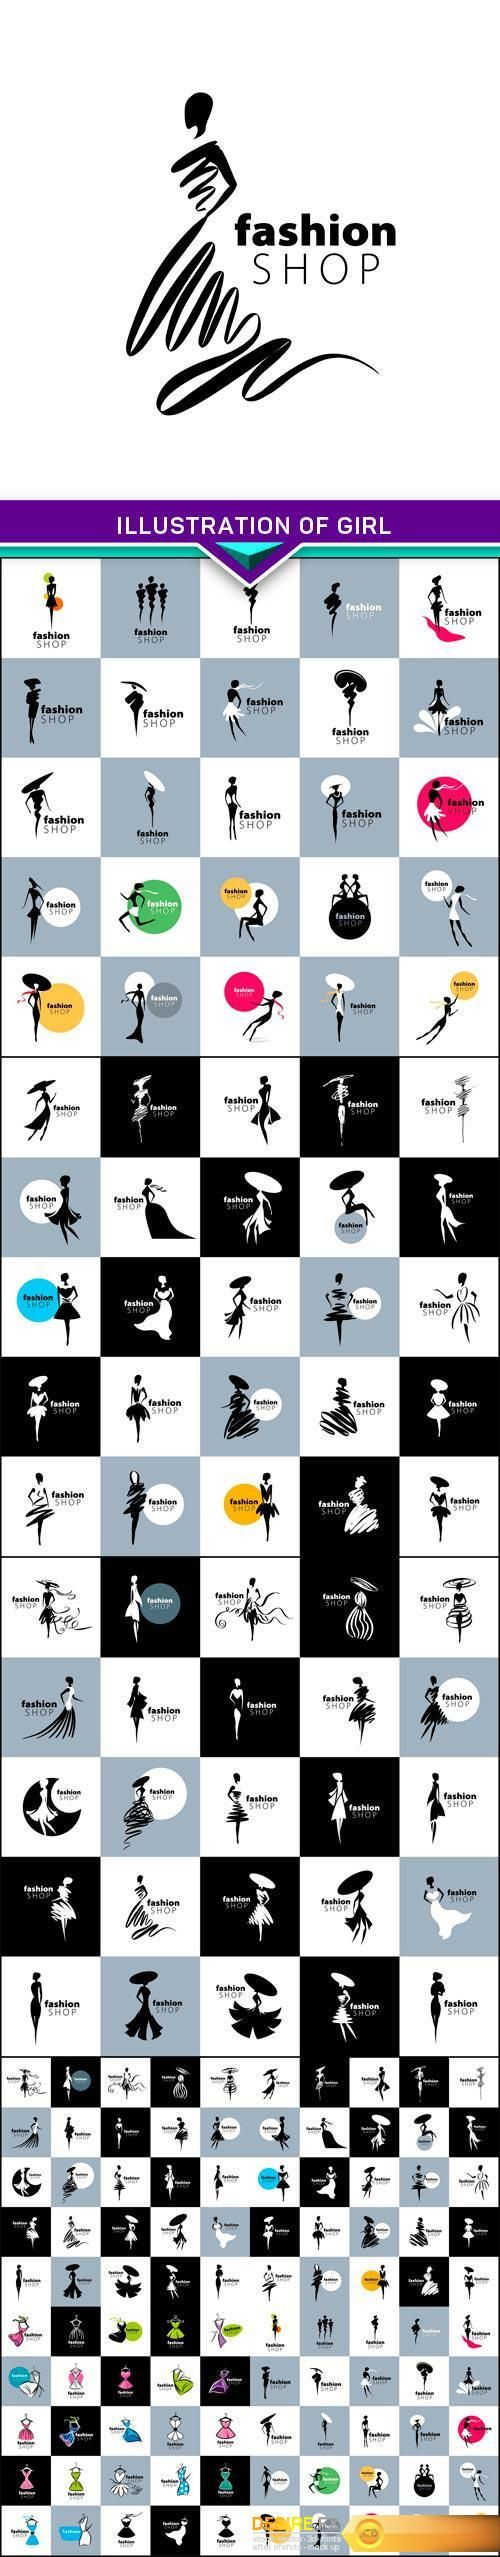 Find your Grapfix Desire With US http://www.desirefx.me/illustration-of-girl-vector-logo-for-womens-fashion-5x-eps/